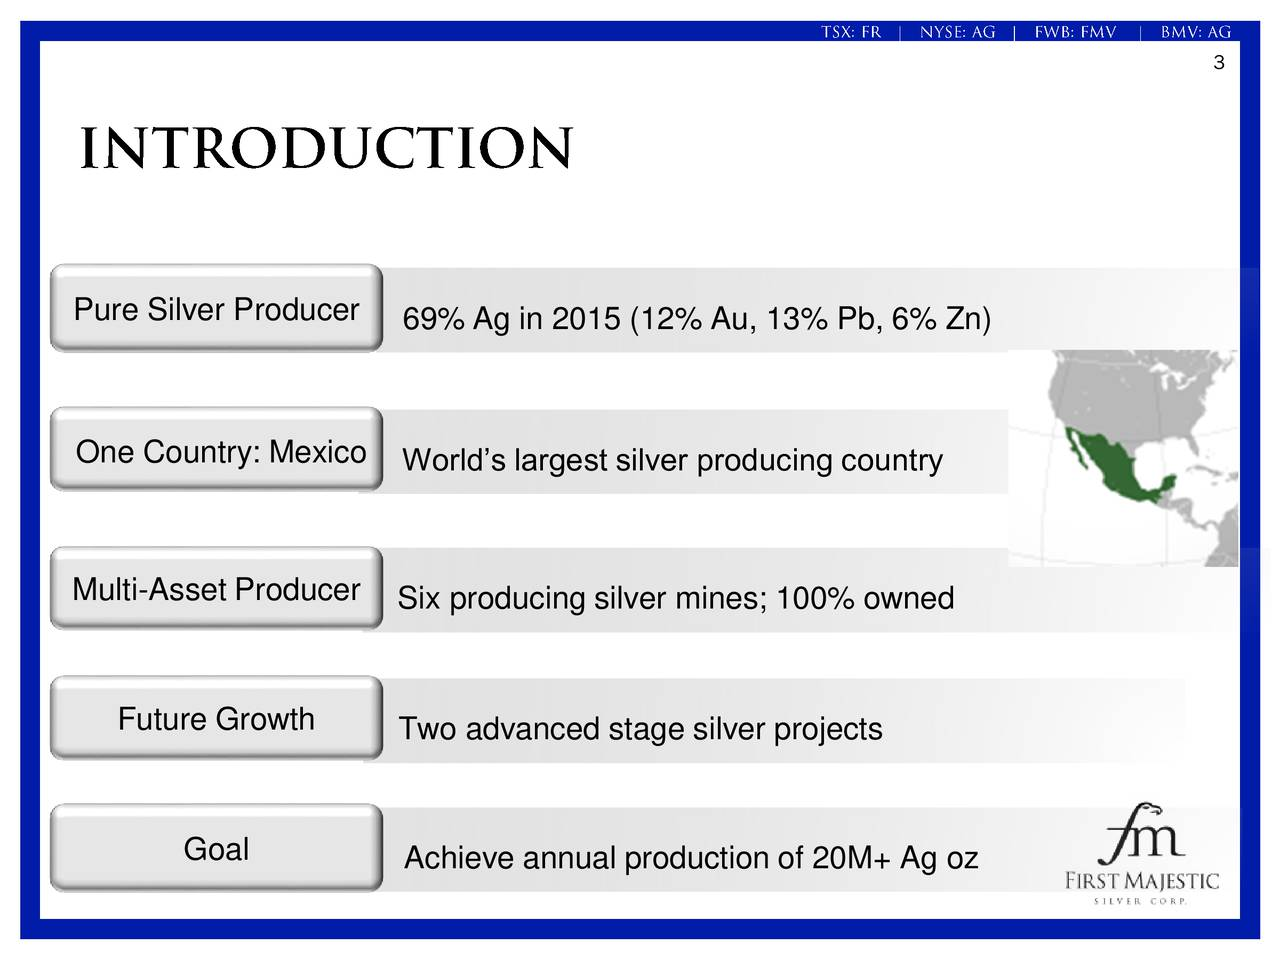 Pure Silver Producer 69% Ag in 2015 (12% Au, 13% Pb, 6% Zn) One Country: Mexico Worlds largest silver producing country Multi-Asset Producer Six producing silver mines; 100% owned Future Growth Two advanced stage silver projects Goal Achieve annual production of 20M+ Ag oz